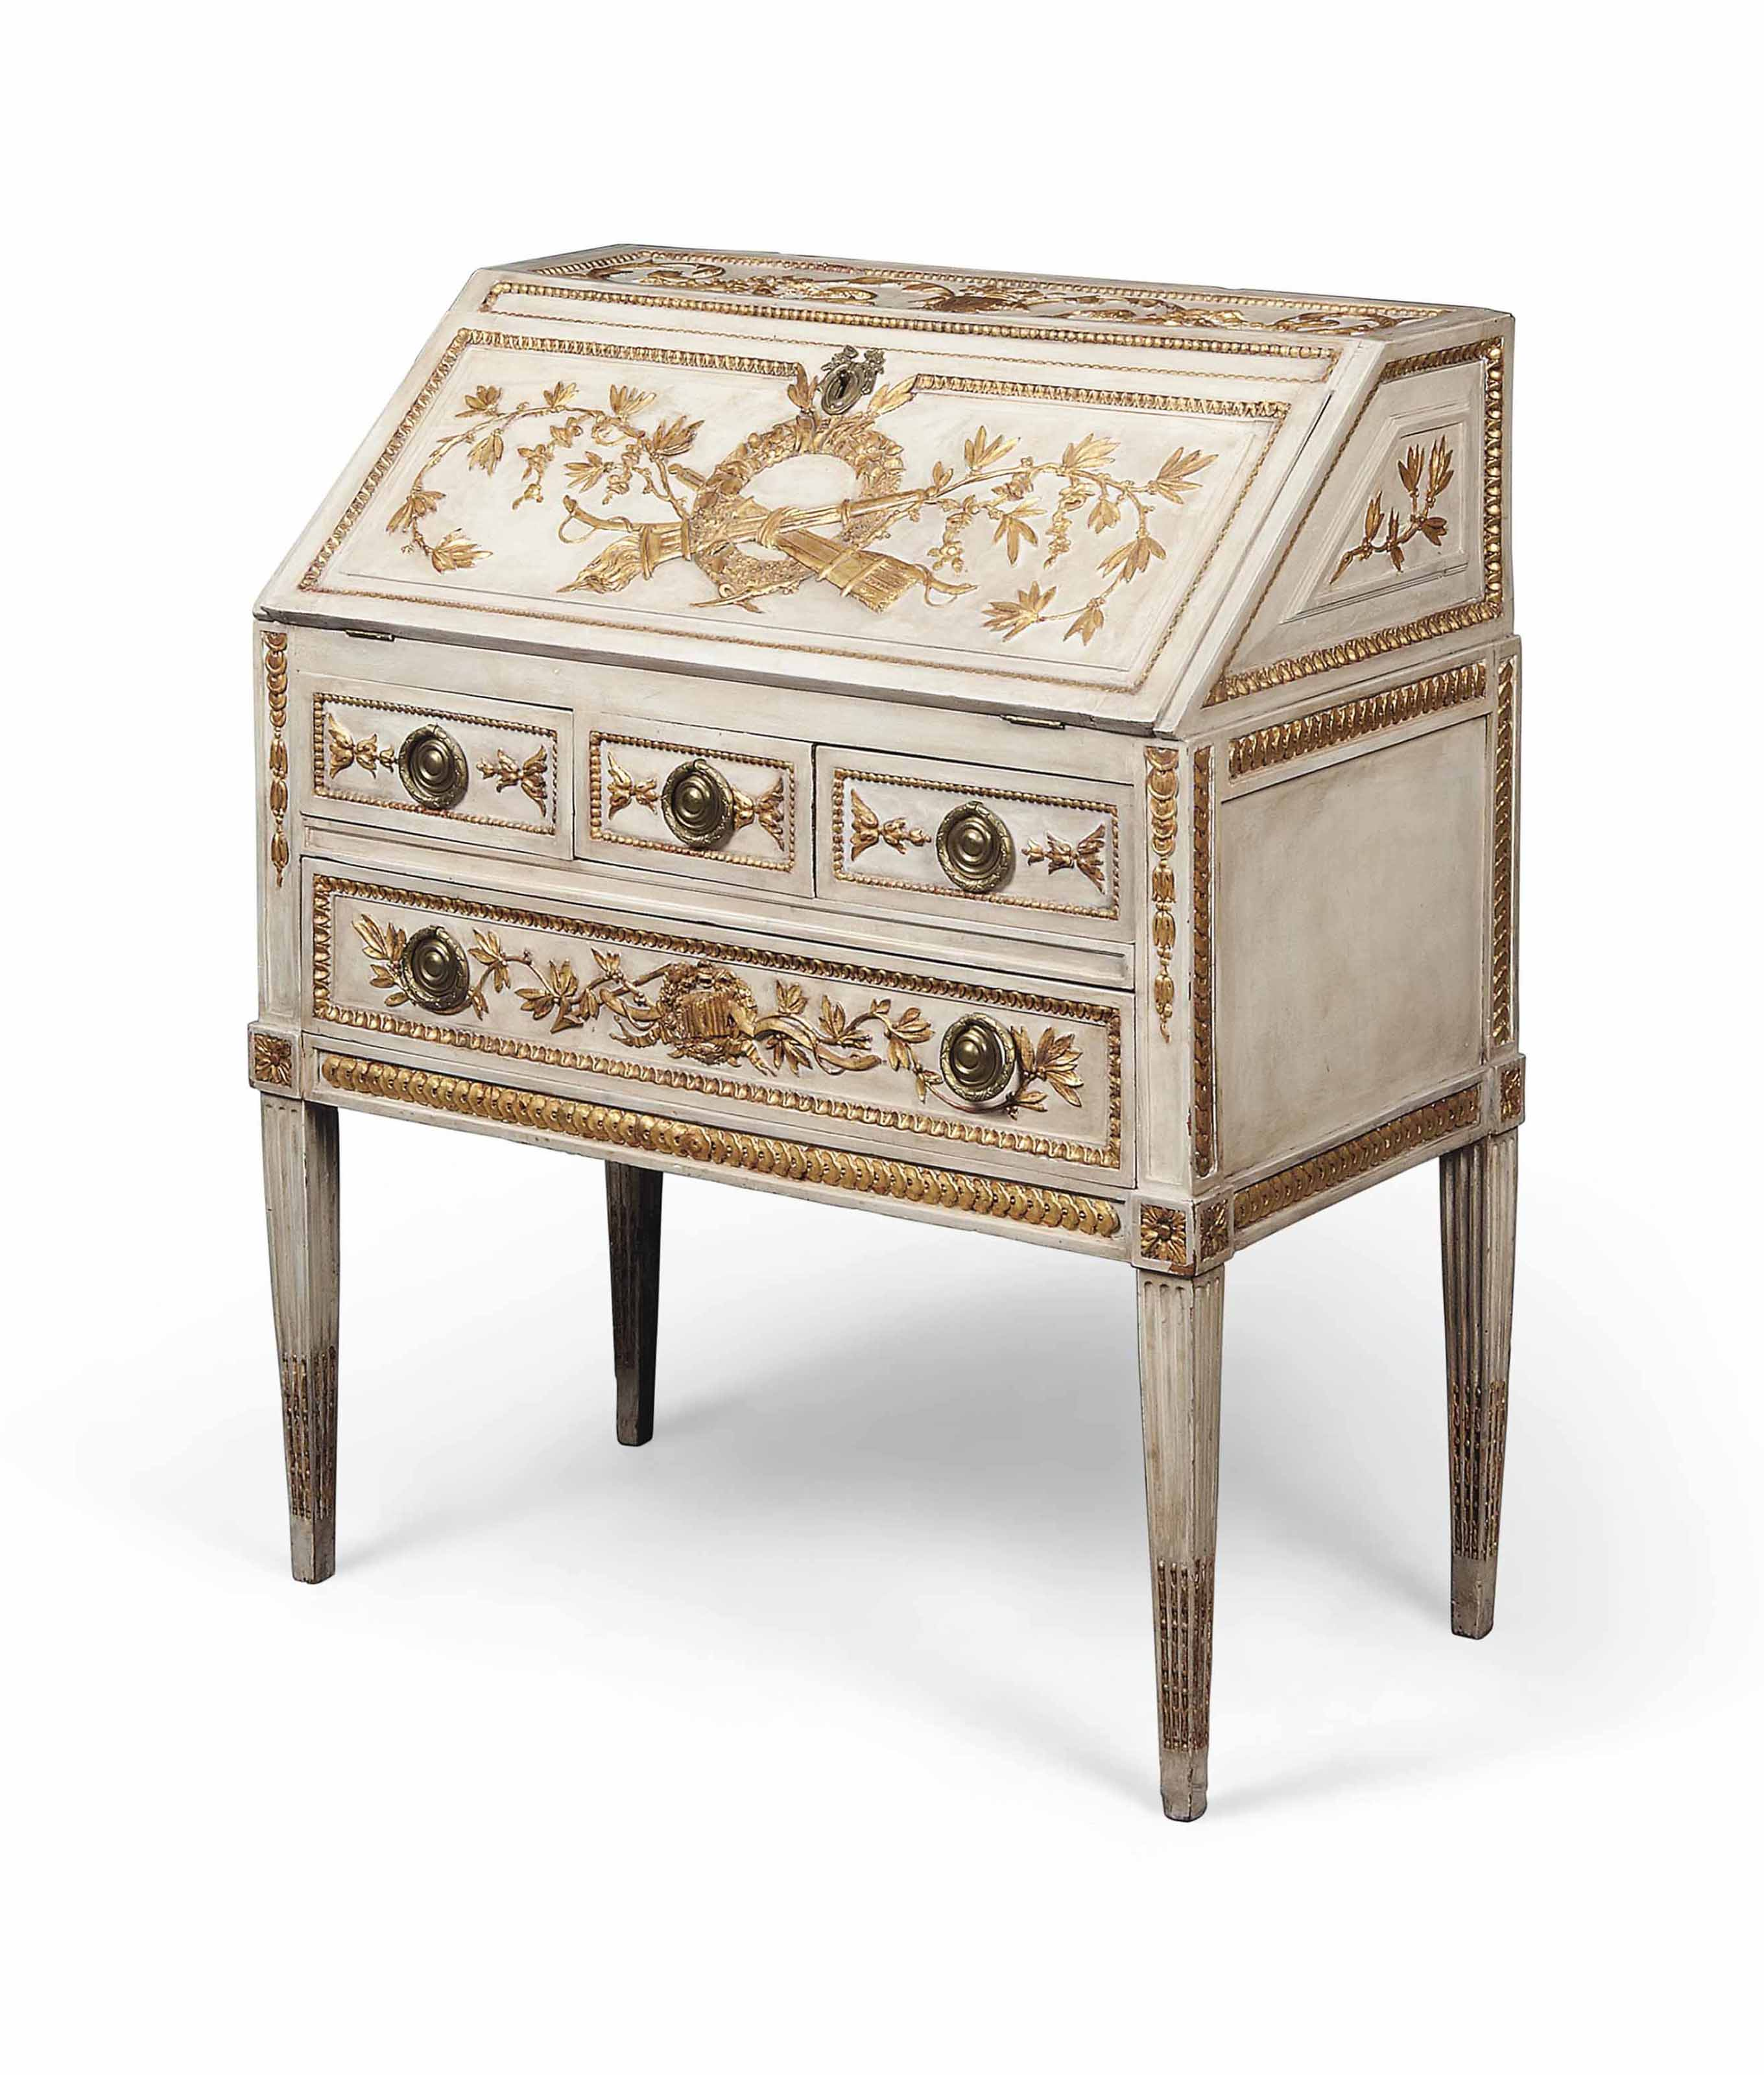 A NORTH ITALIAN GREY-PAINTED AND PARCEL-GILT BUREAU